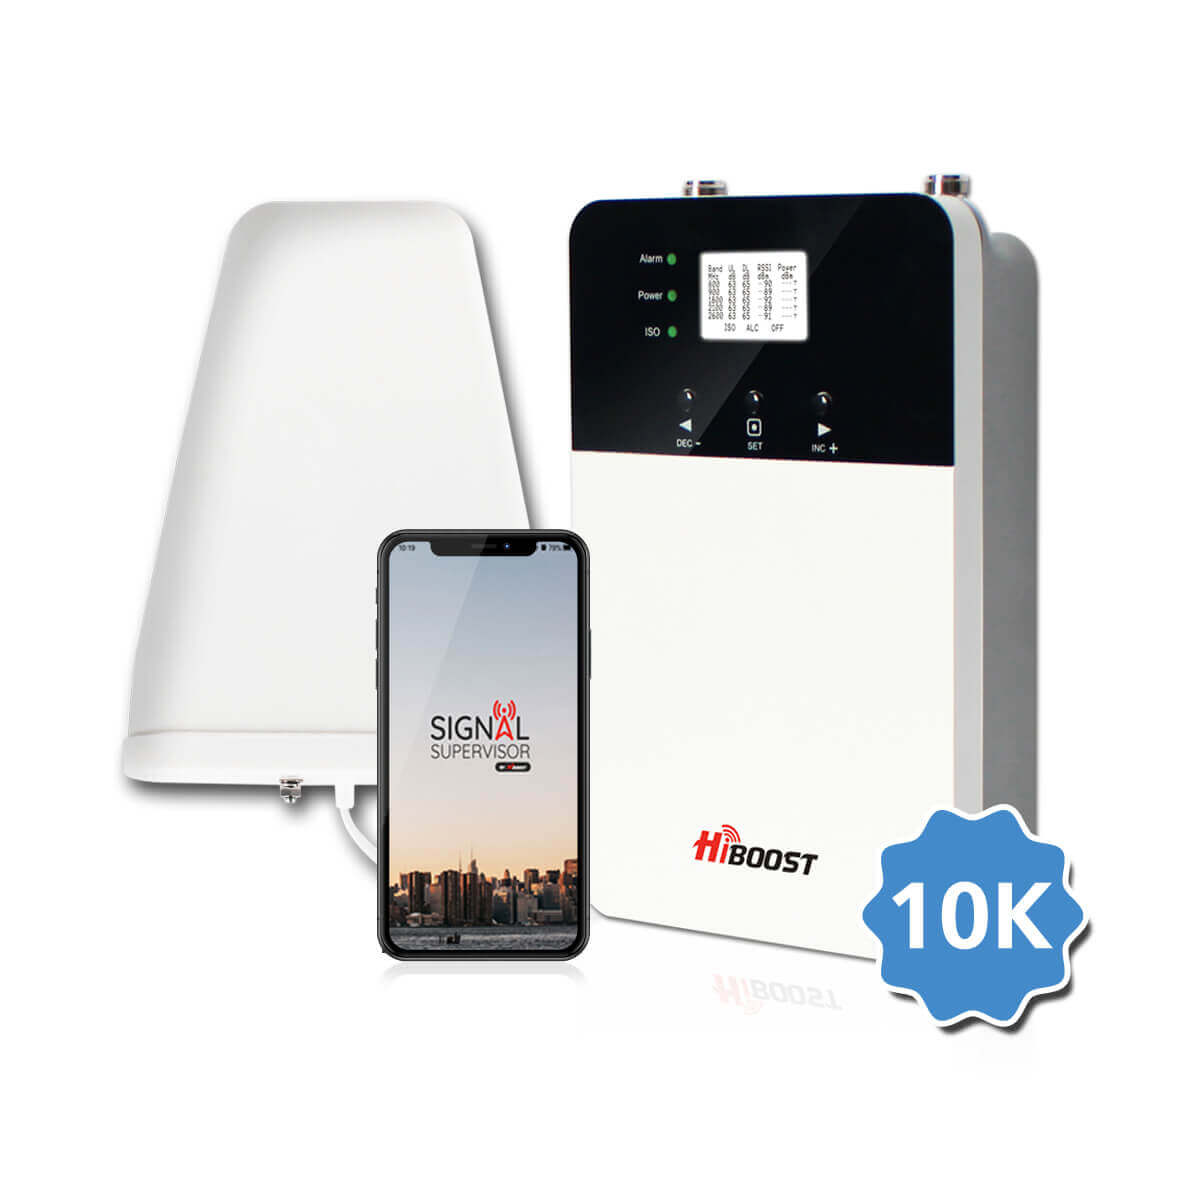 Hiboost-10K-Plus-Cell-Phone-Signal-Booster